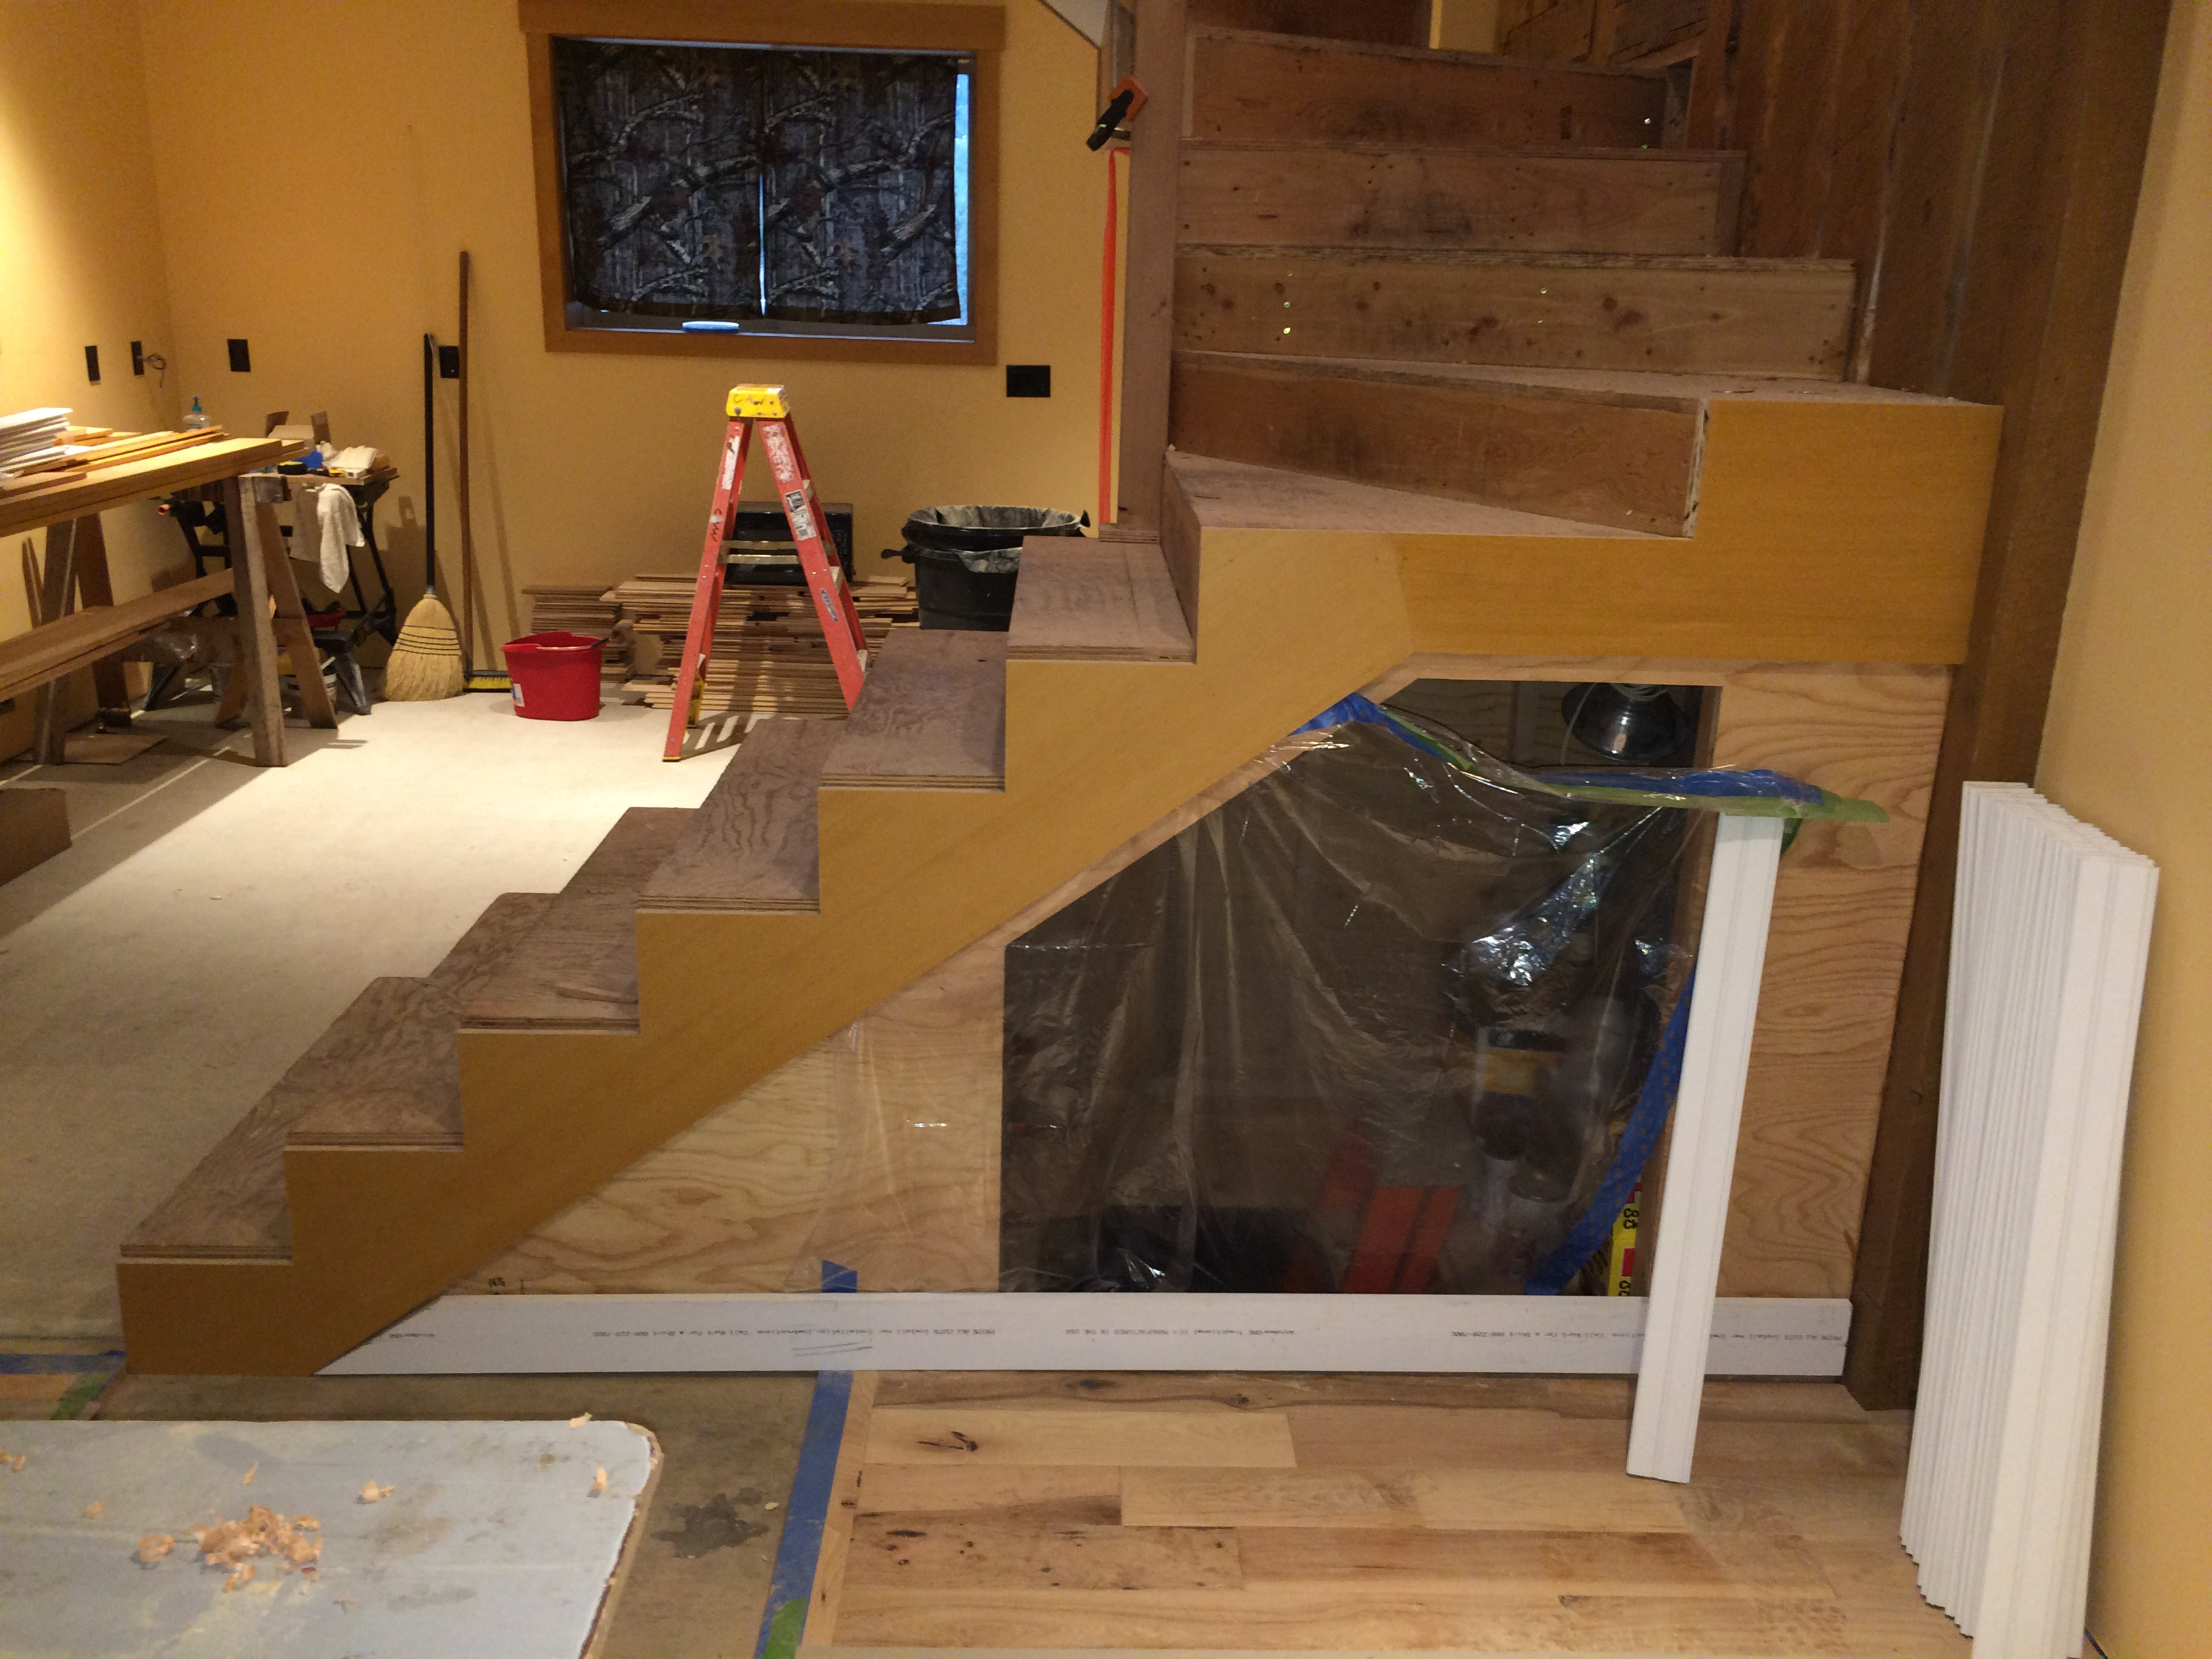 Stair Trim Out (3)u2014Prefinished Plywood Skirt Boards